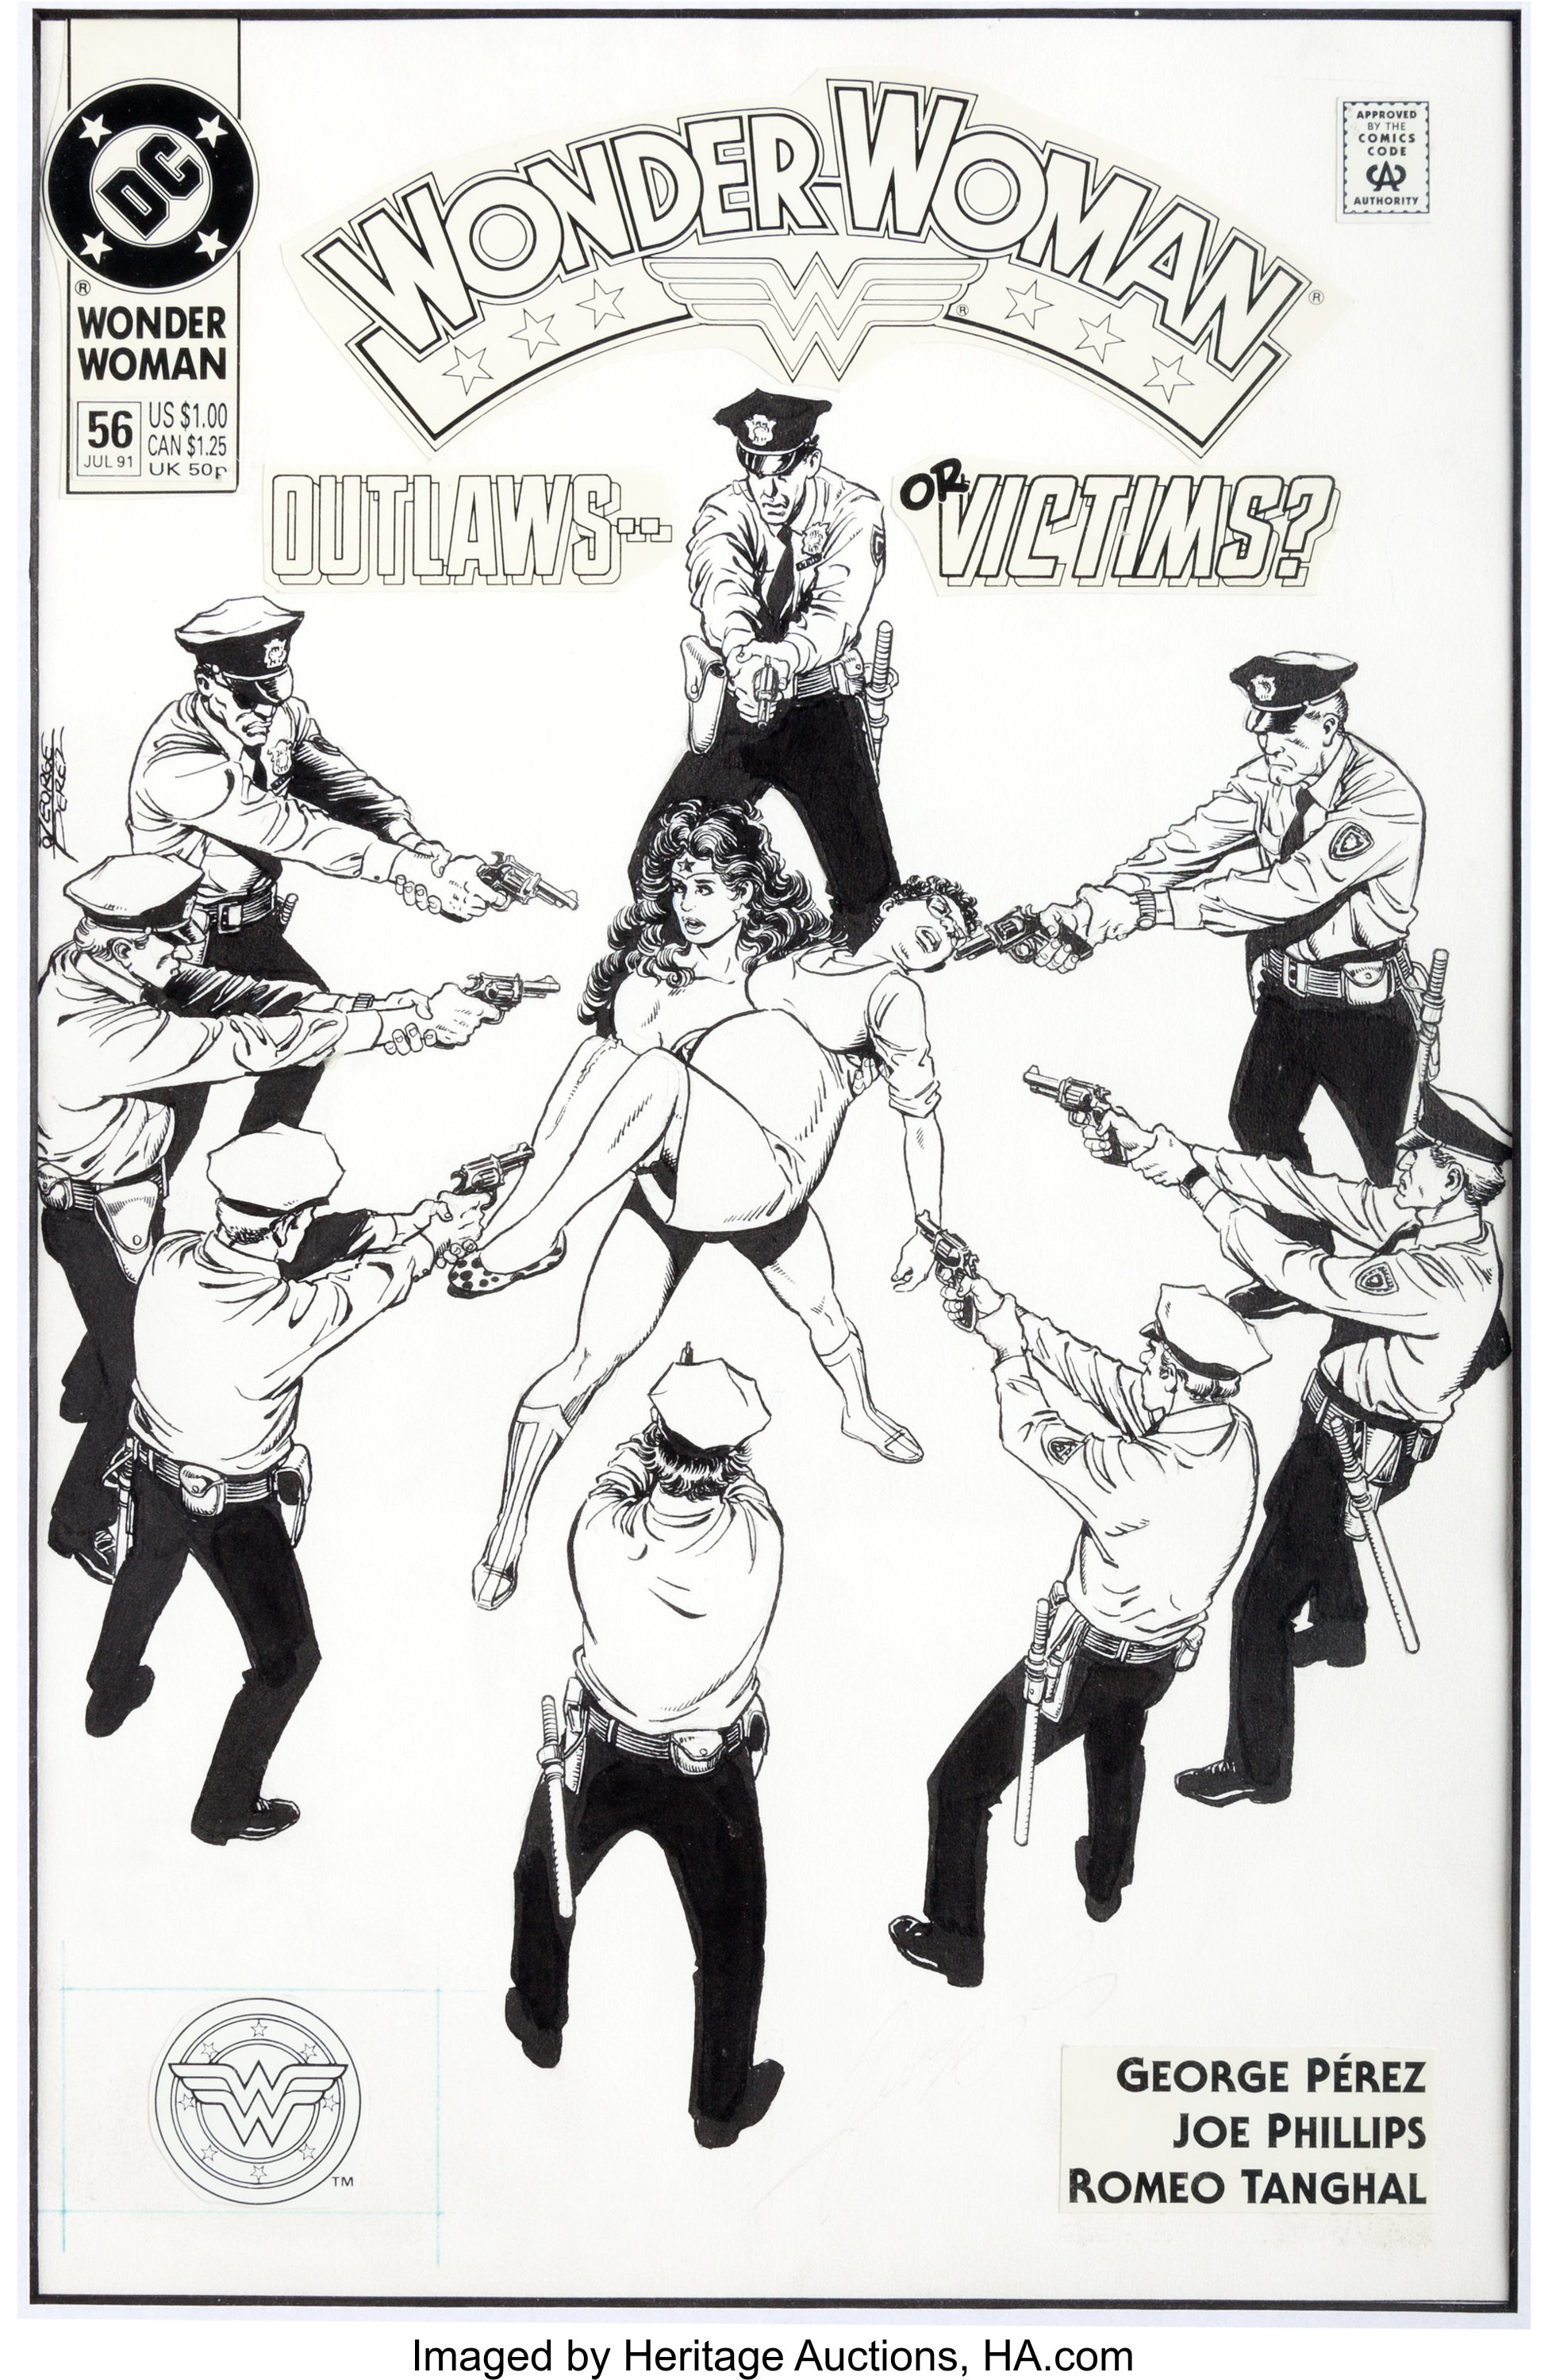 Original cover art by George Perez from Wonder Woman #56, 1991